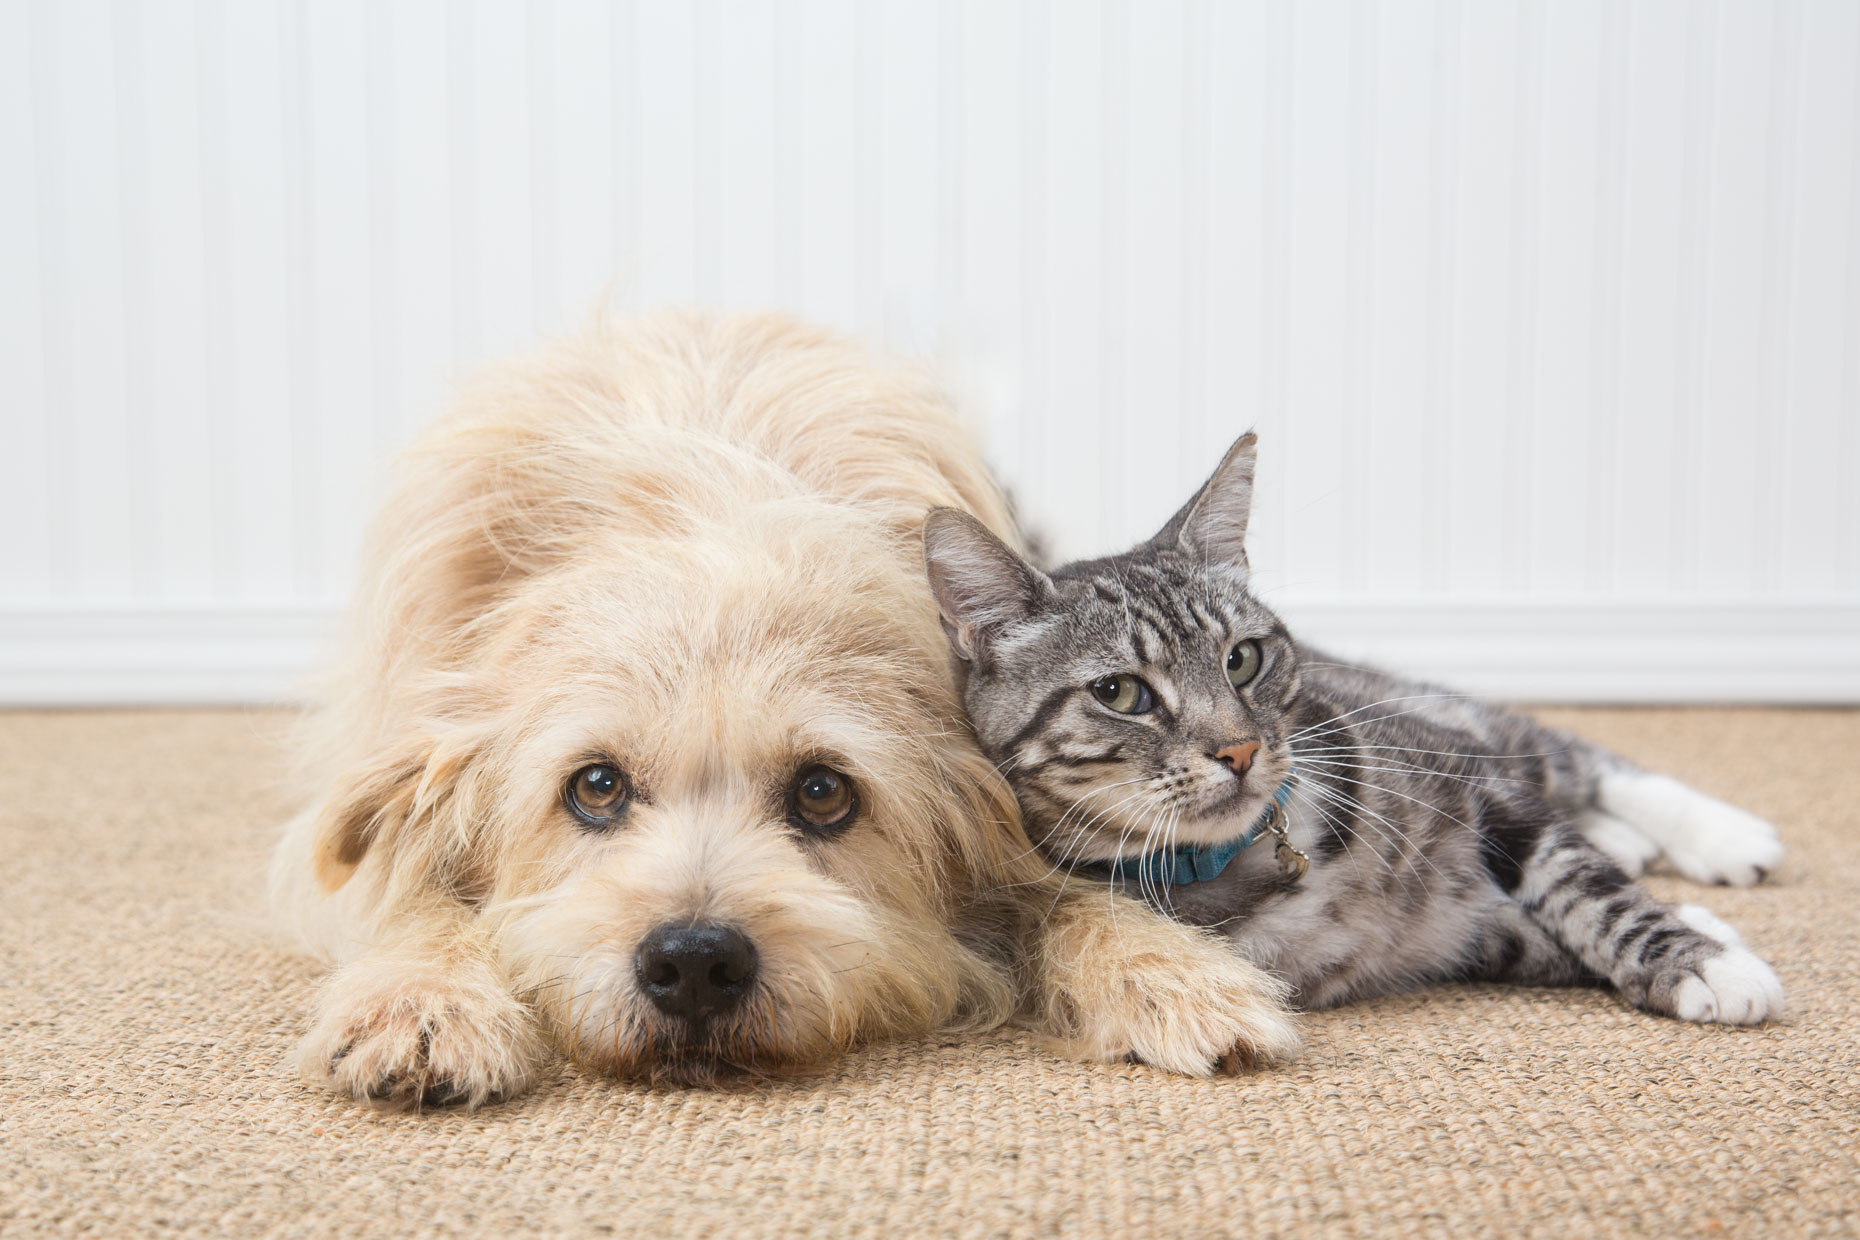 Dog and Cat Photography | Cat Leaning on Dog by Mark Rogers